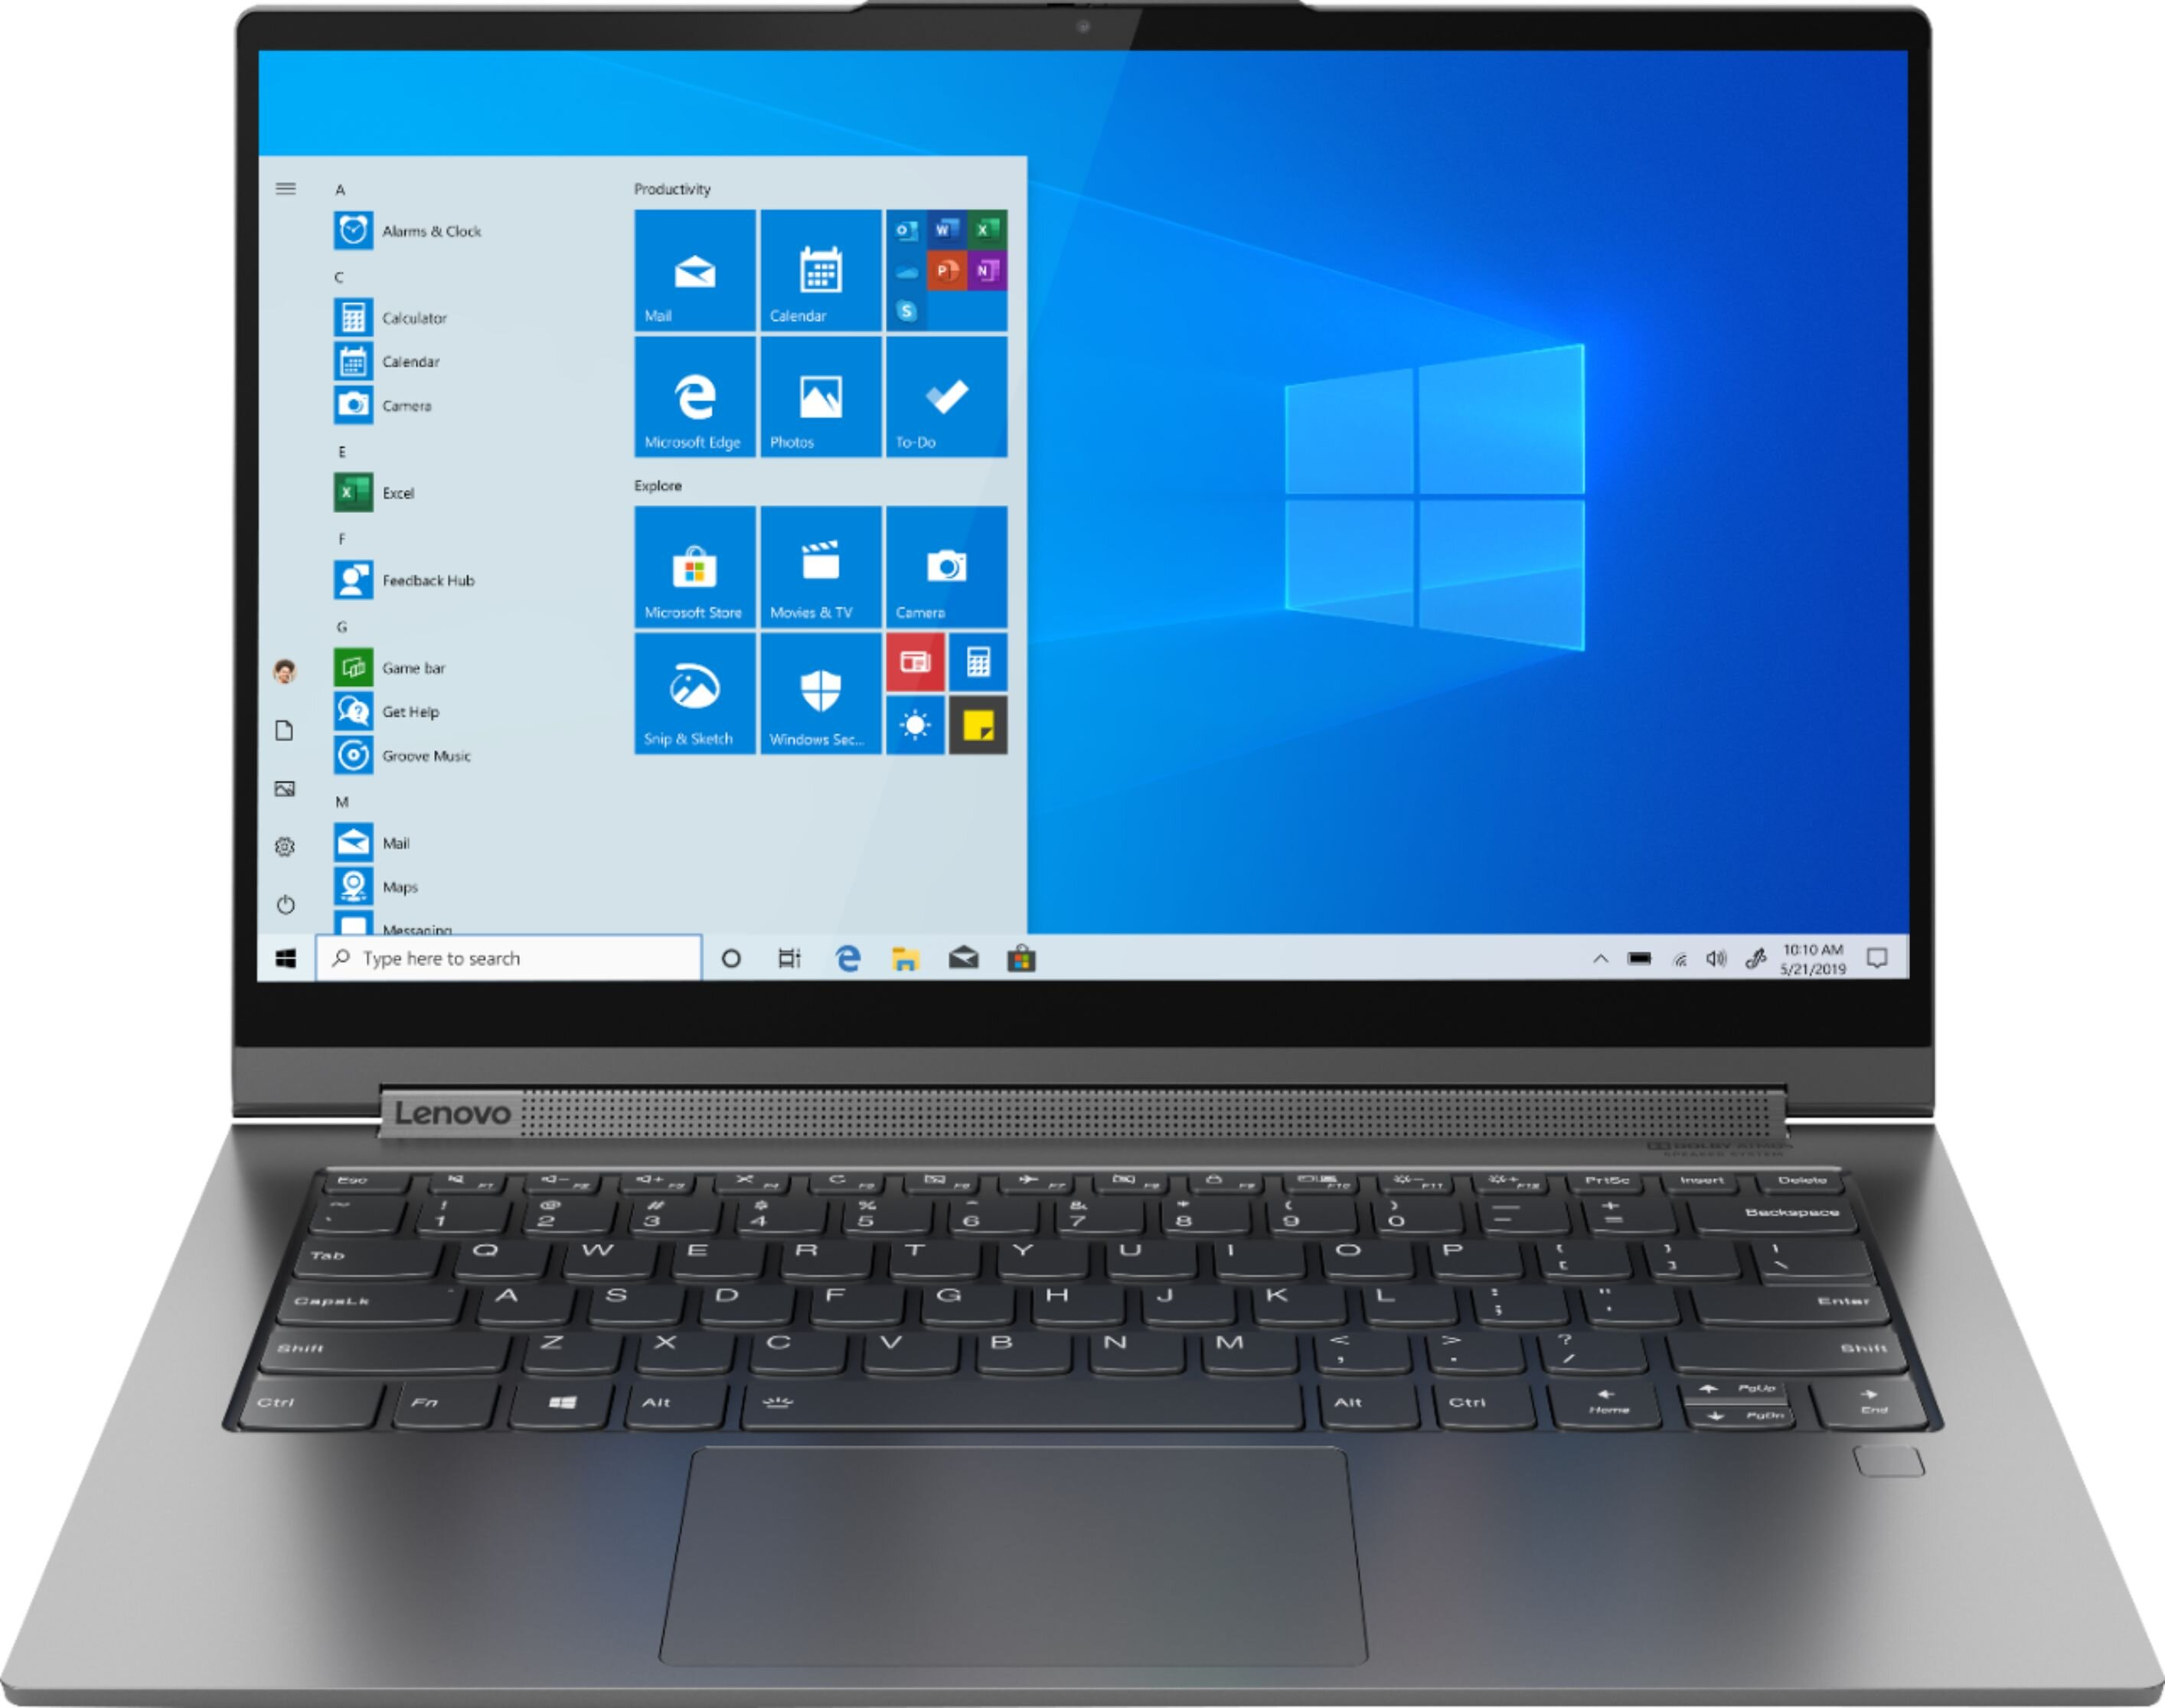 Lenovo Yoga C940 2-in-1 Laptop (81Q9002GUS)